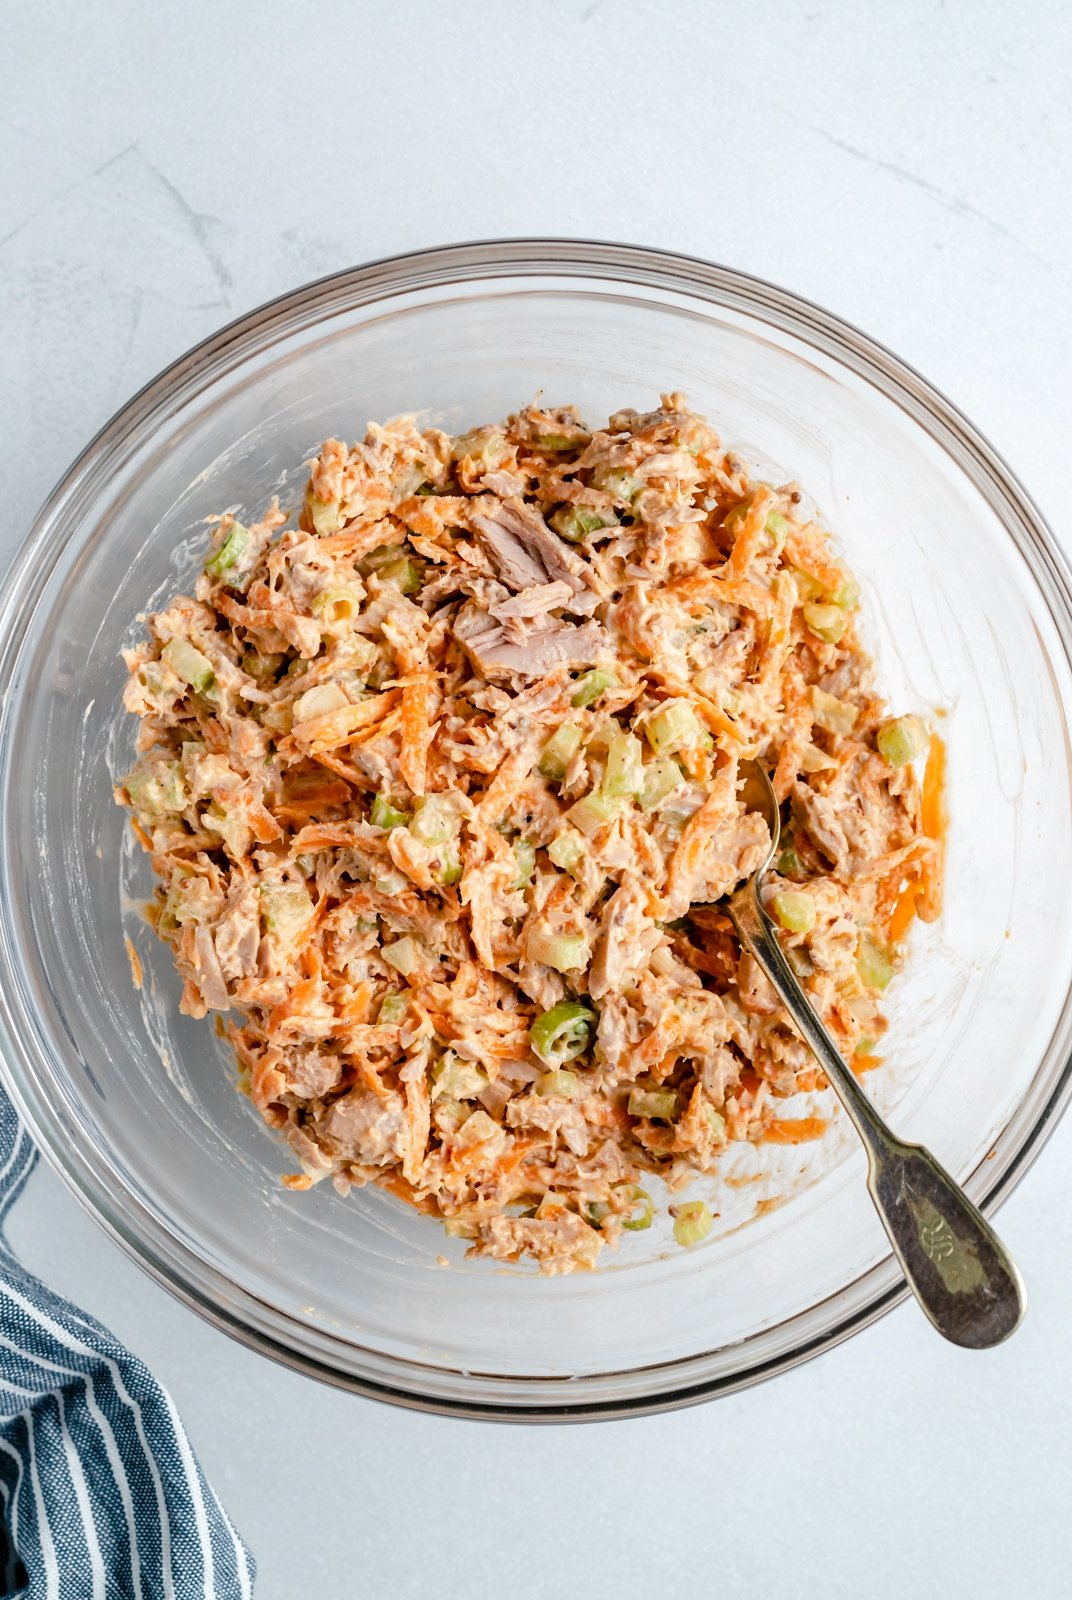 tuna mixture for tuna stuffed bell peppers in a bowl